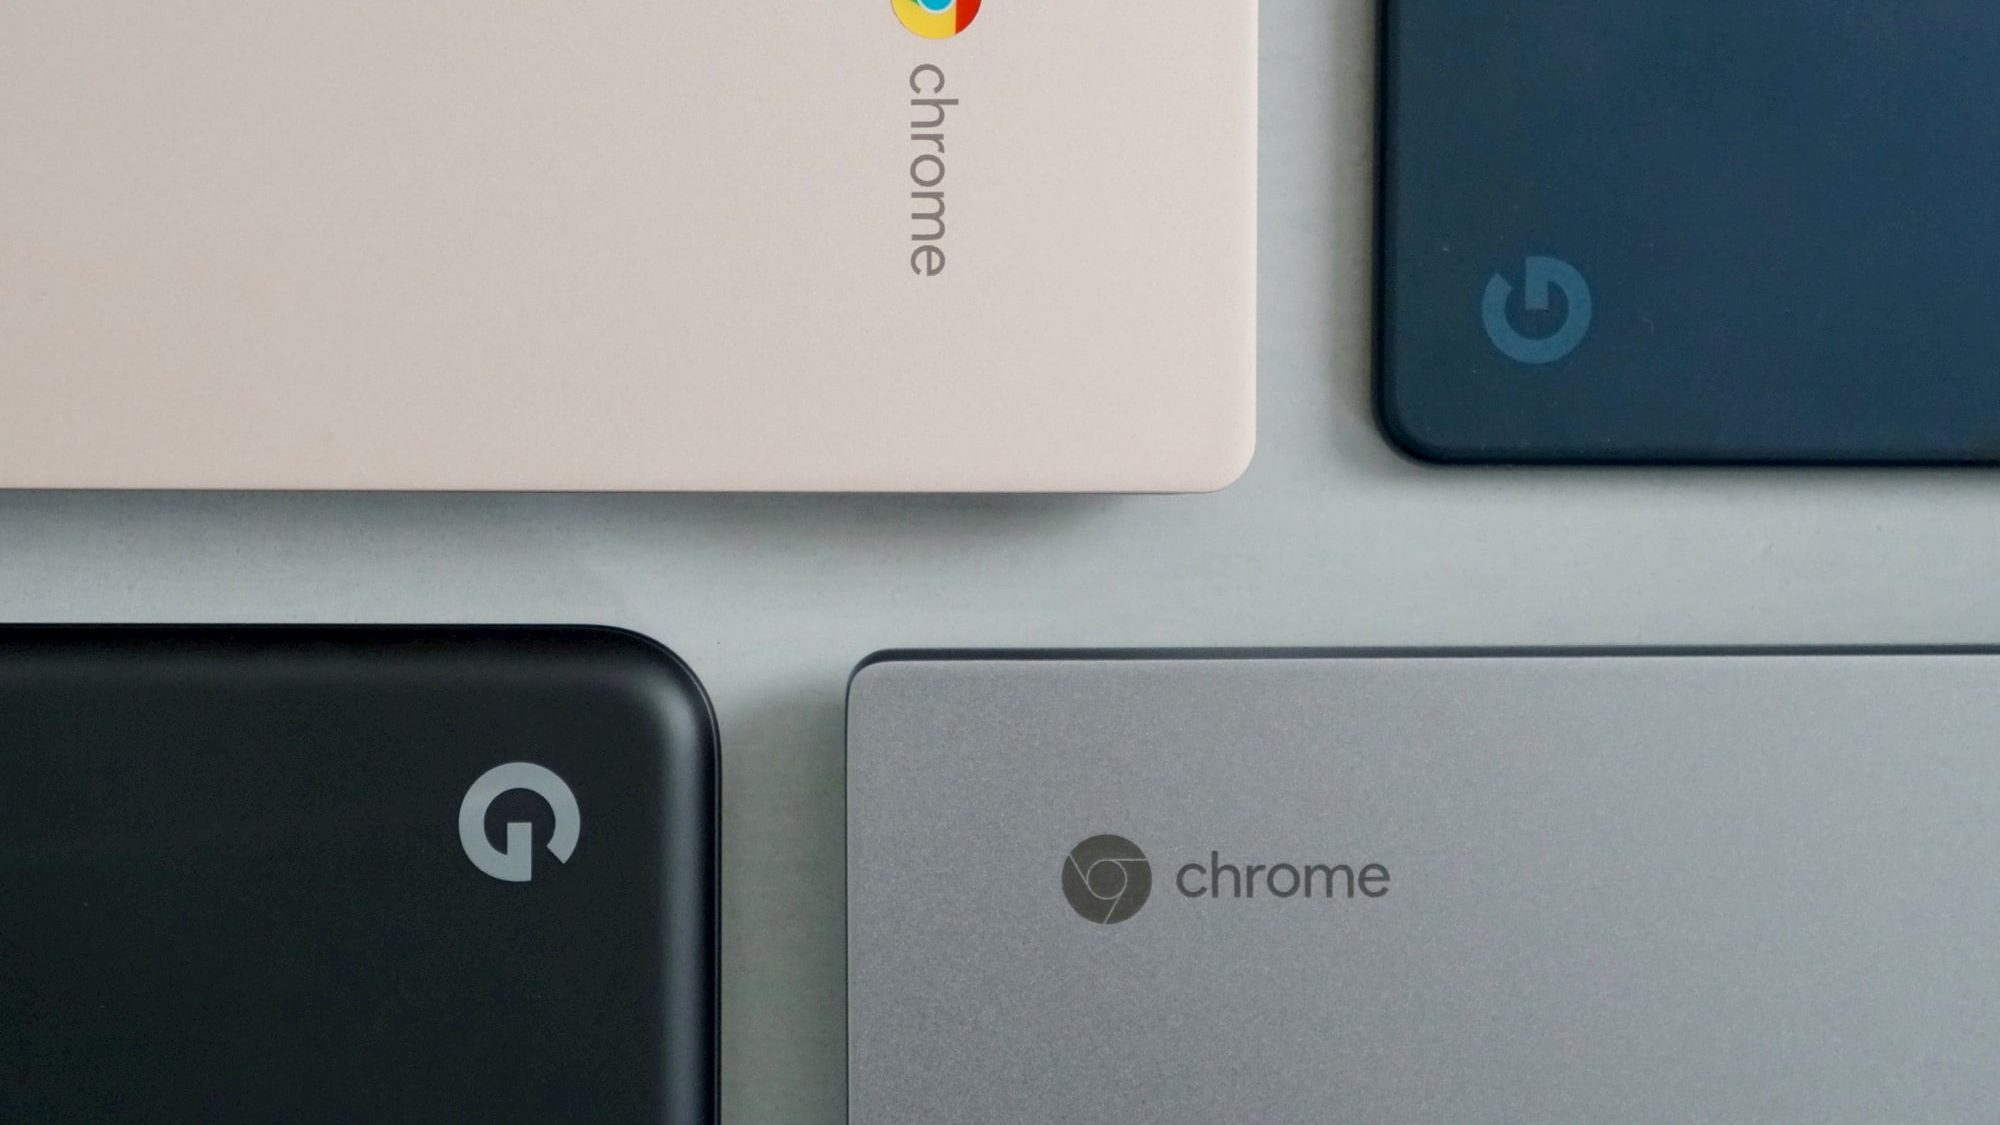 If you just got a new Chromebook, here are 10 things you need to know to get started [VIDEO]